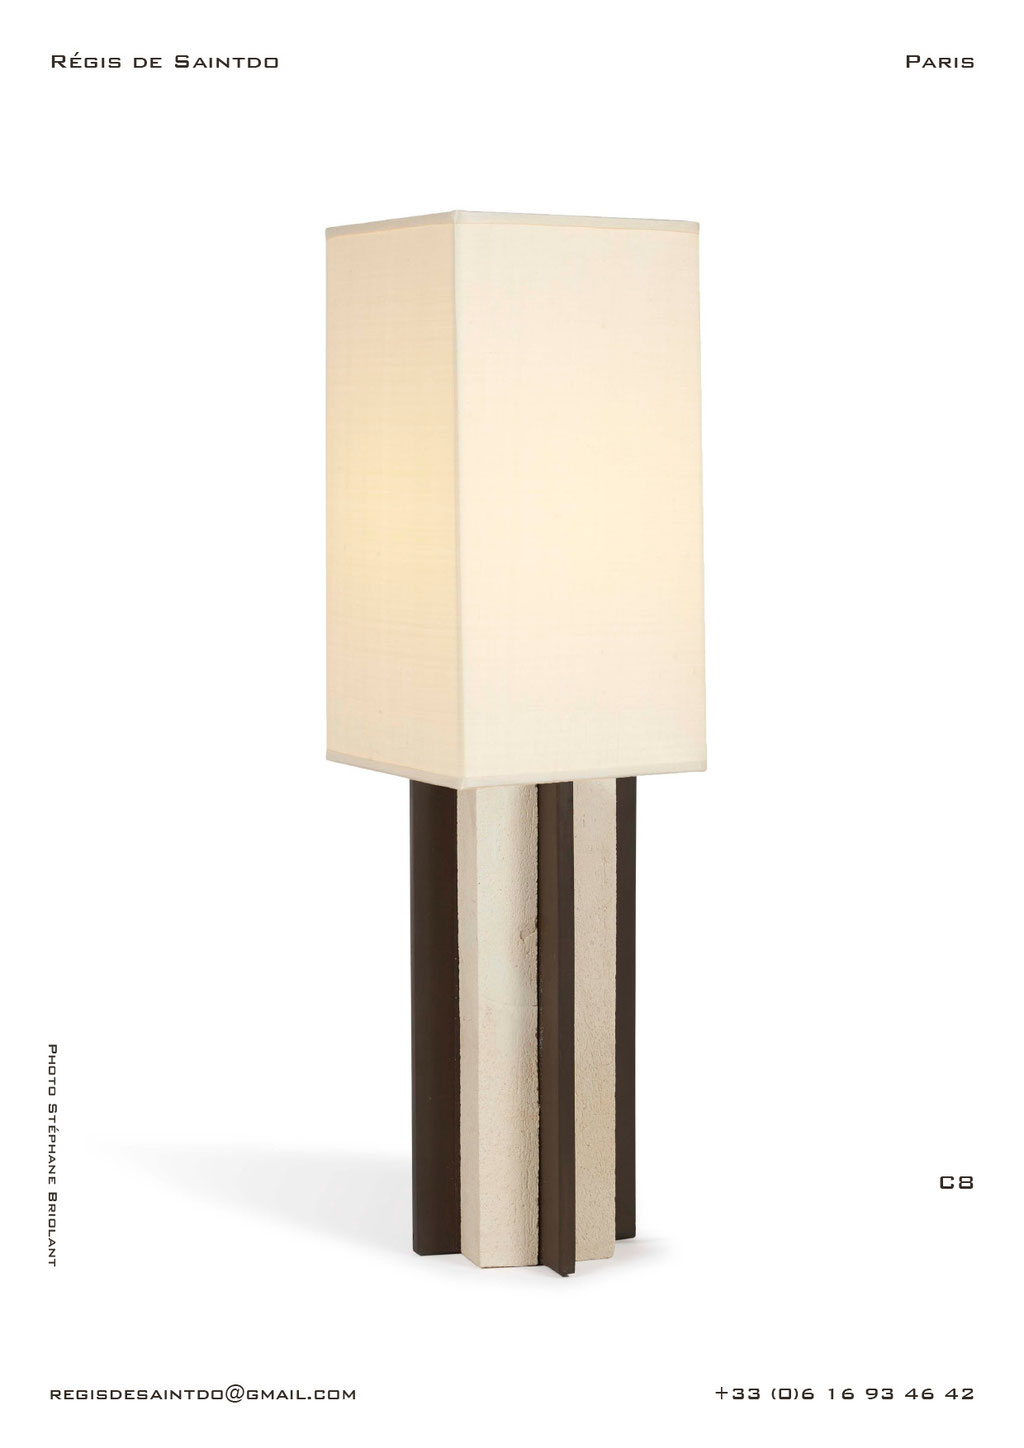 Lampe-C8-céramique-blanche-brute-brune-polie-faite-main-unique